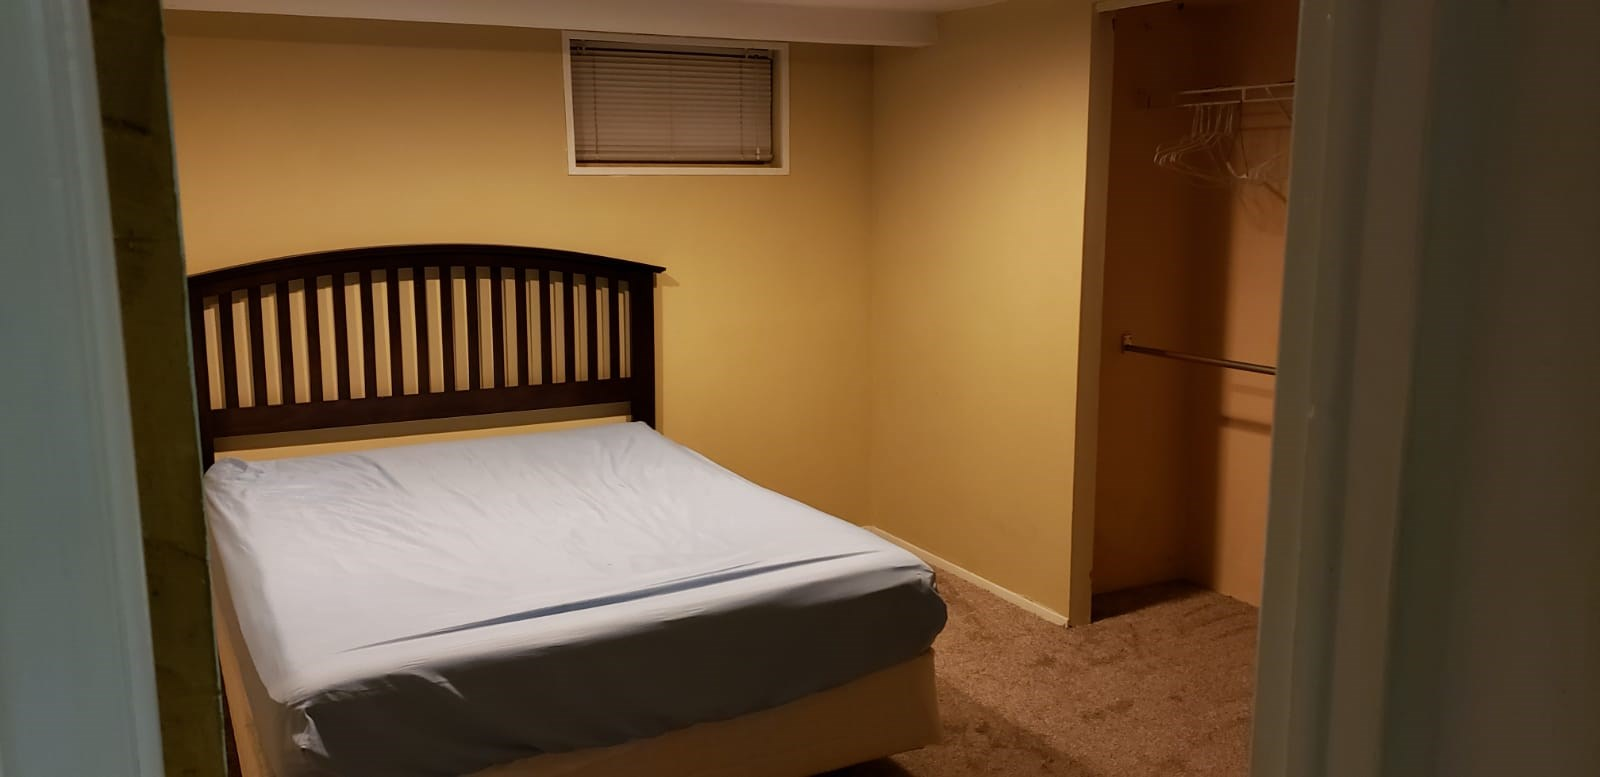 1 Bedroom House For Rent In Hicksville Ny One Bedroom